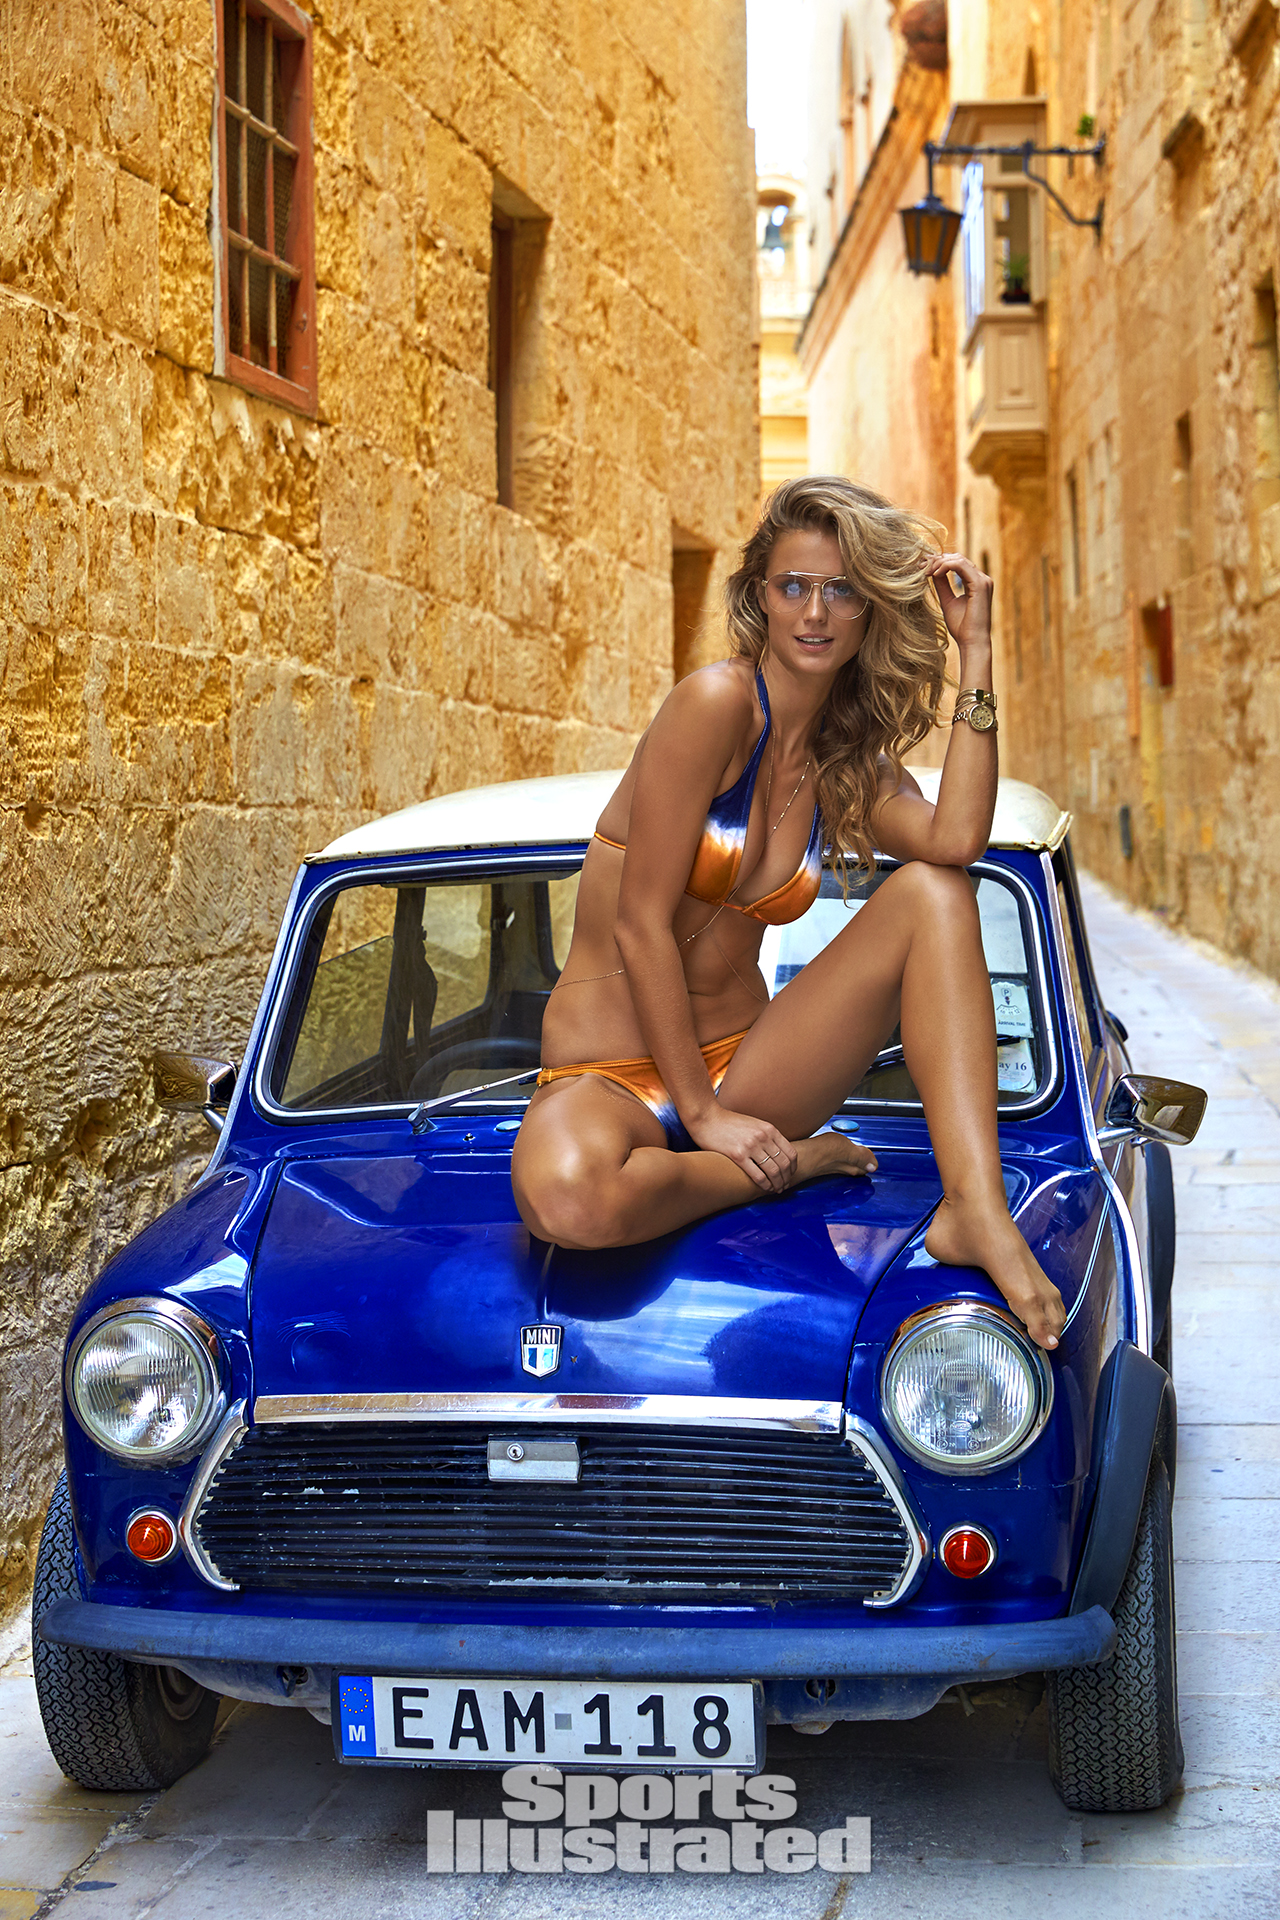 Kate Bock was photographed by Ben Watts in Malta. Swimsuit by Cia. Maritima.